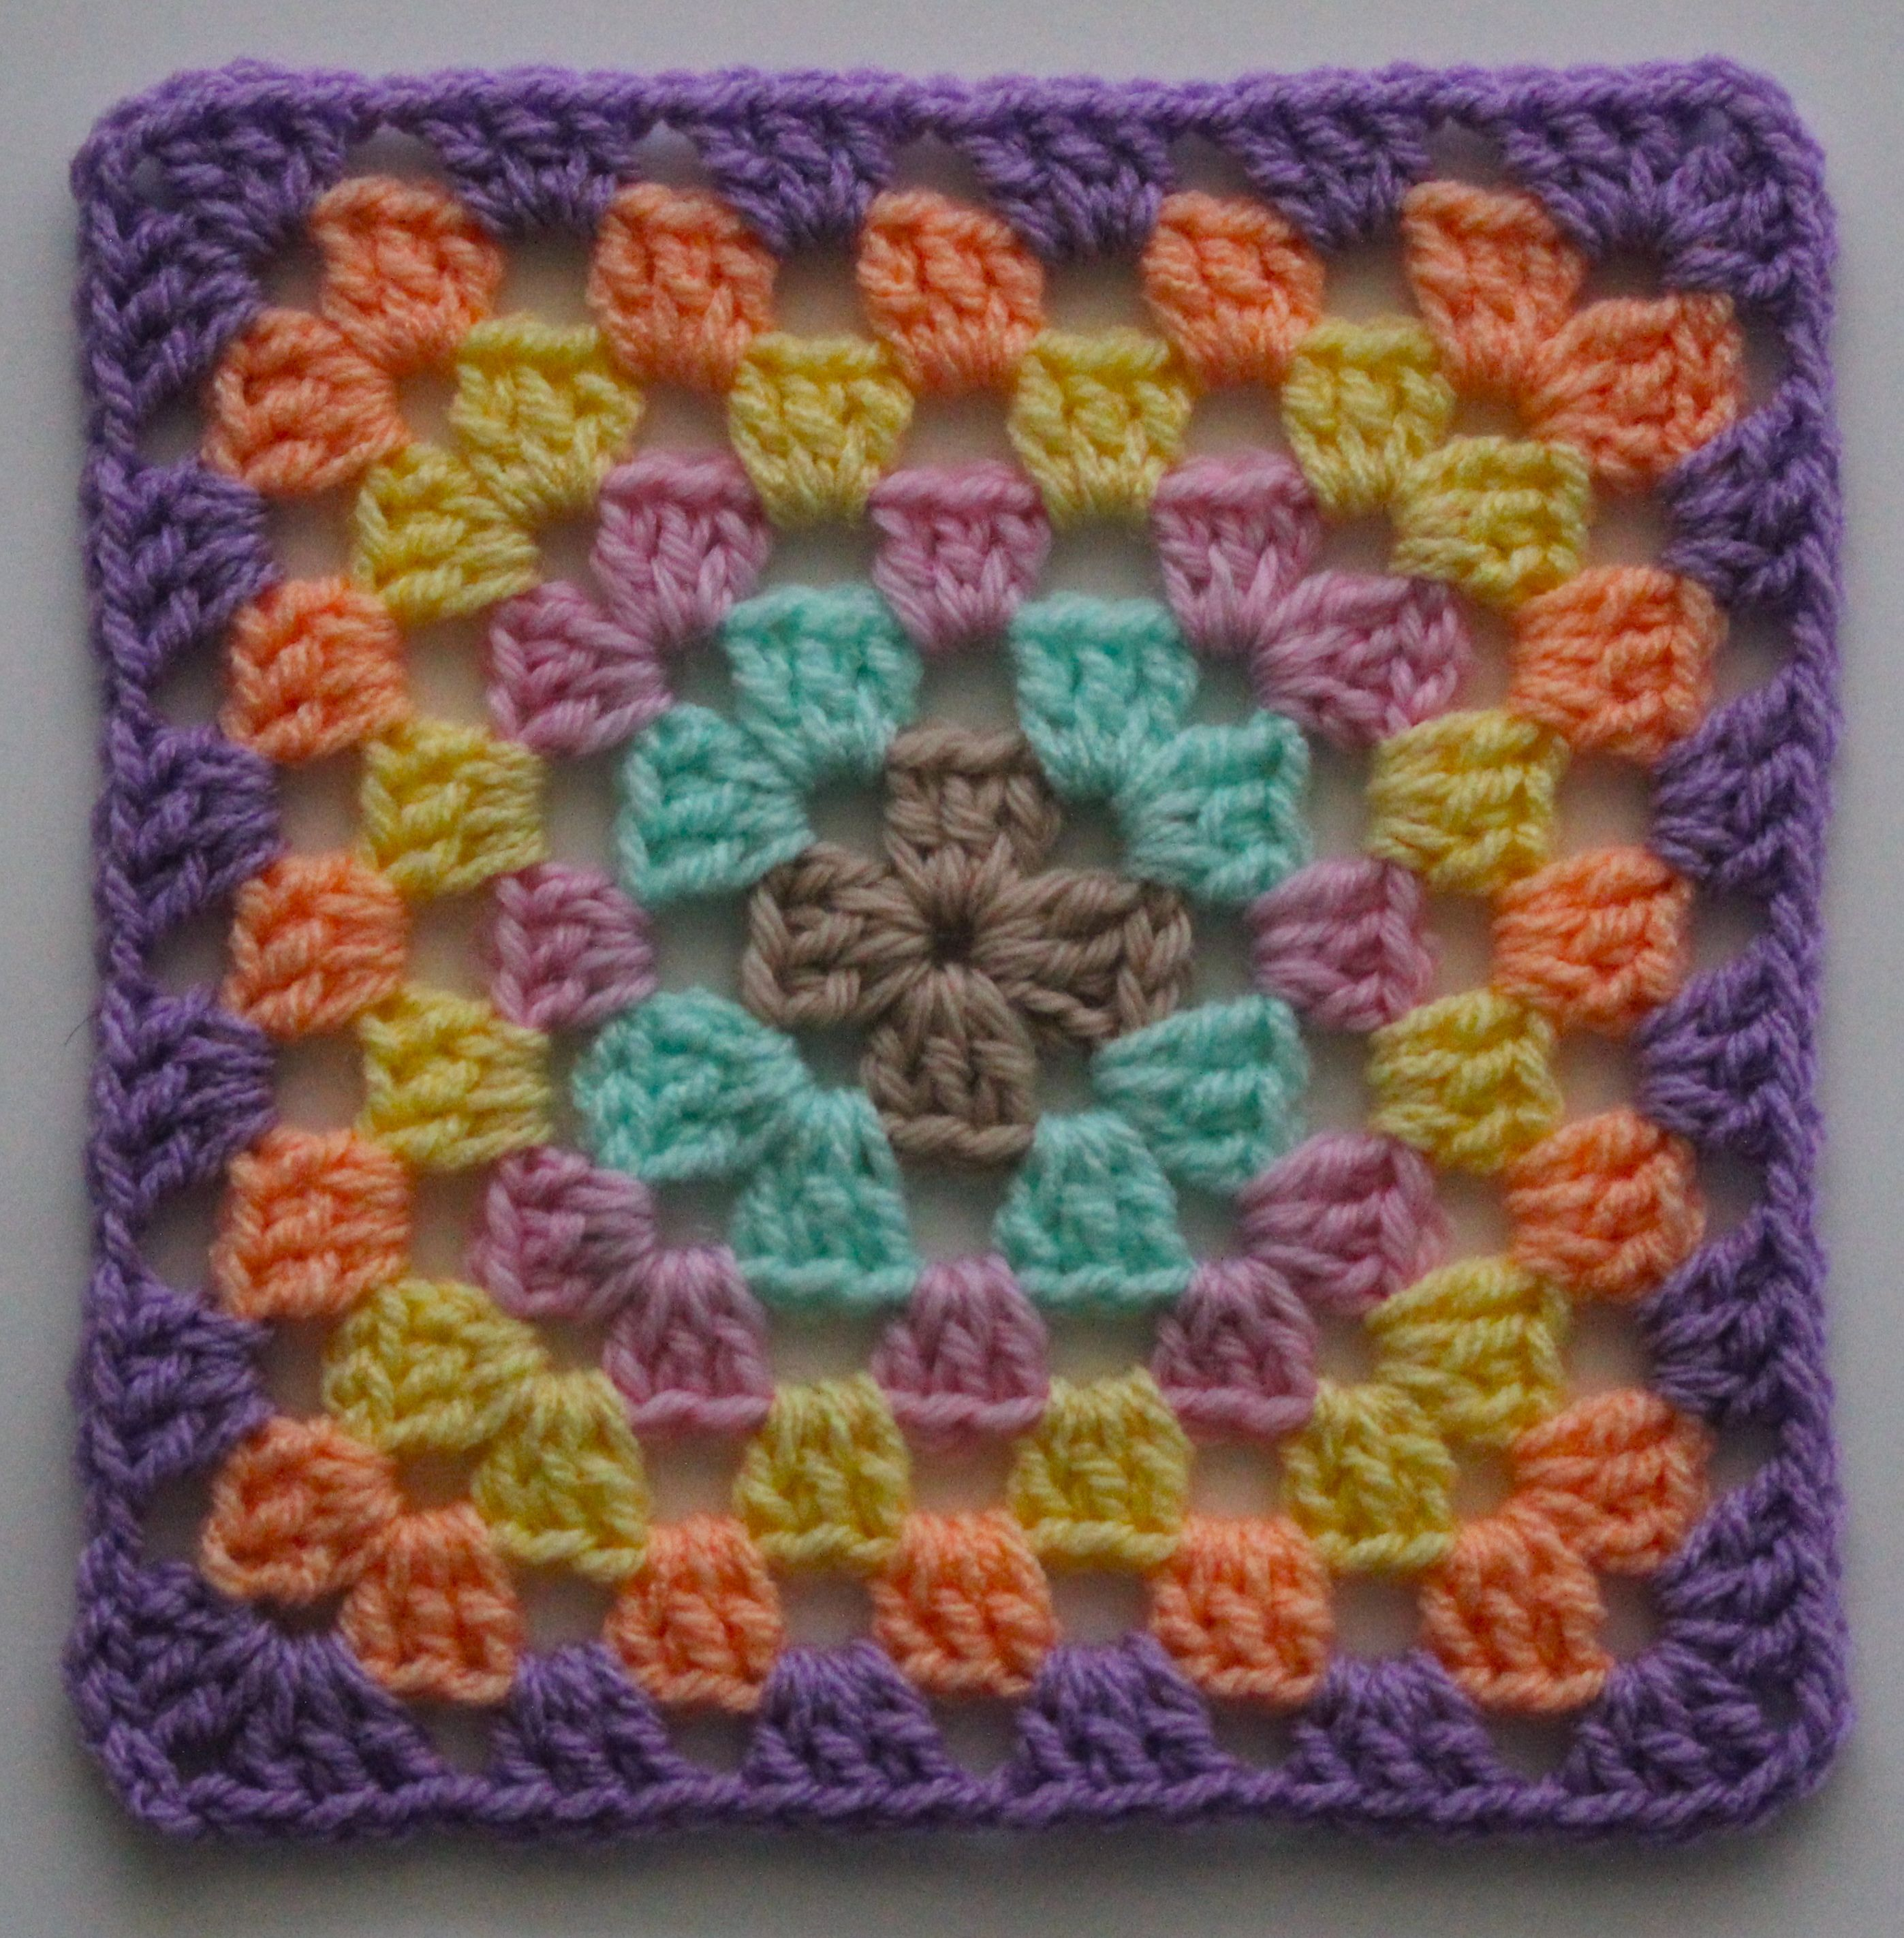 Free motif monday basic granny square granny square tutorial crochet basic granny square tutorial by sarah london bankloansurffo Image collections